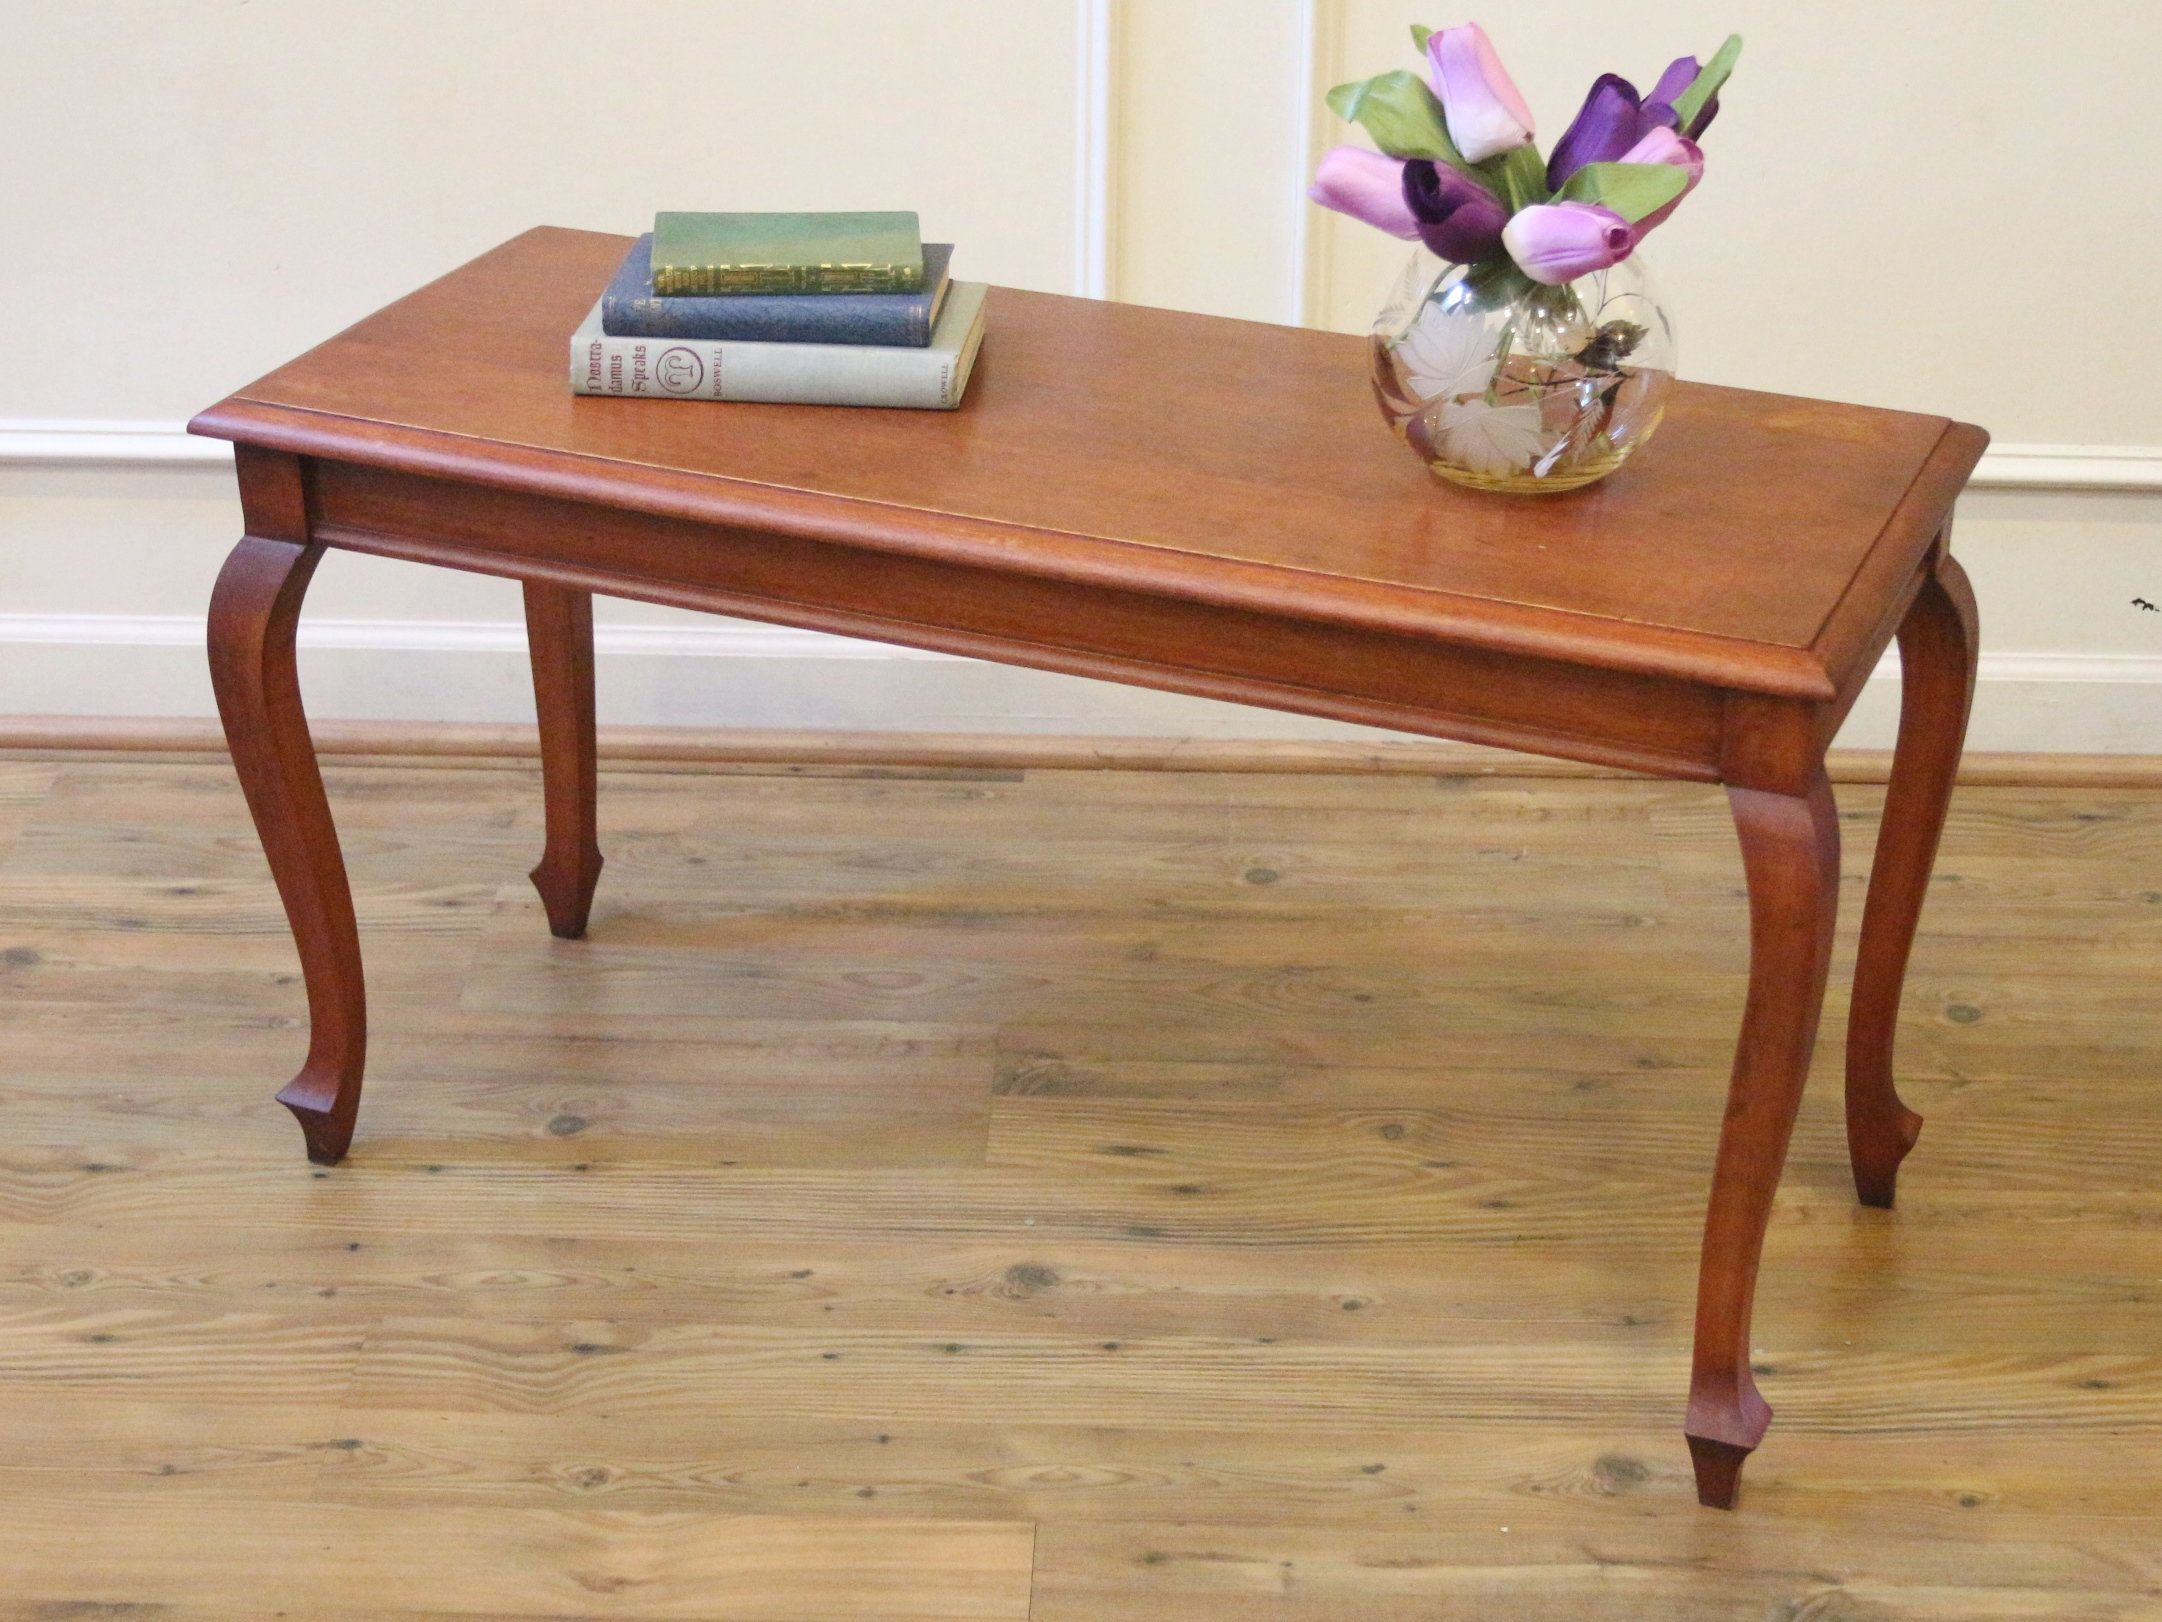 Vintage Small Wooden Coffee Table Or Bench French Country Style Antique Furniture Living Room Coffee Table Wooden Coffee Table [ 1622 x 2162 Pixel ]